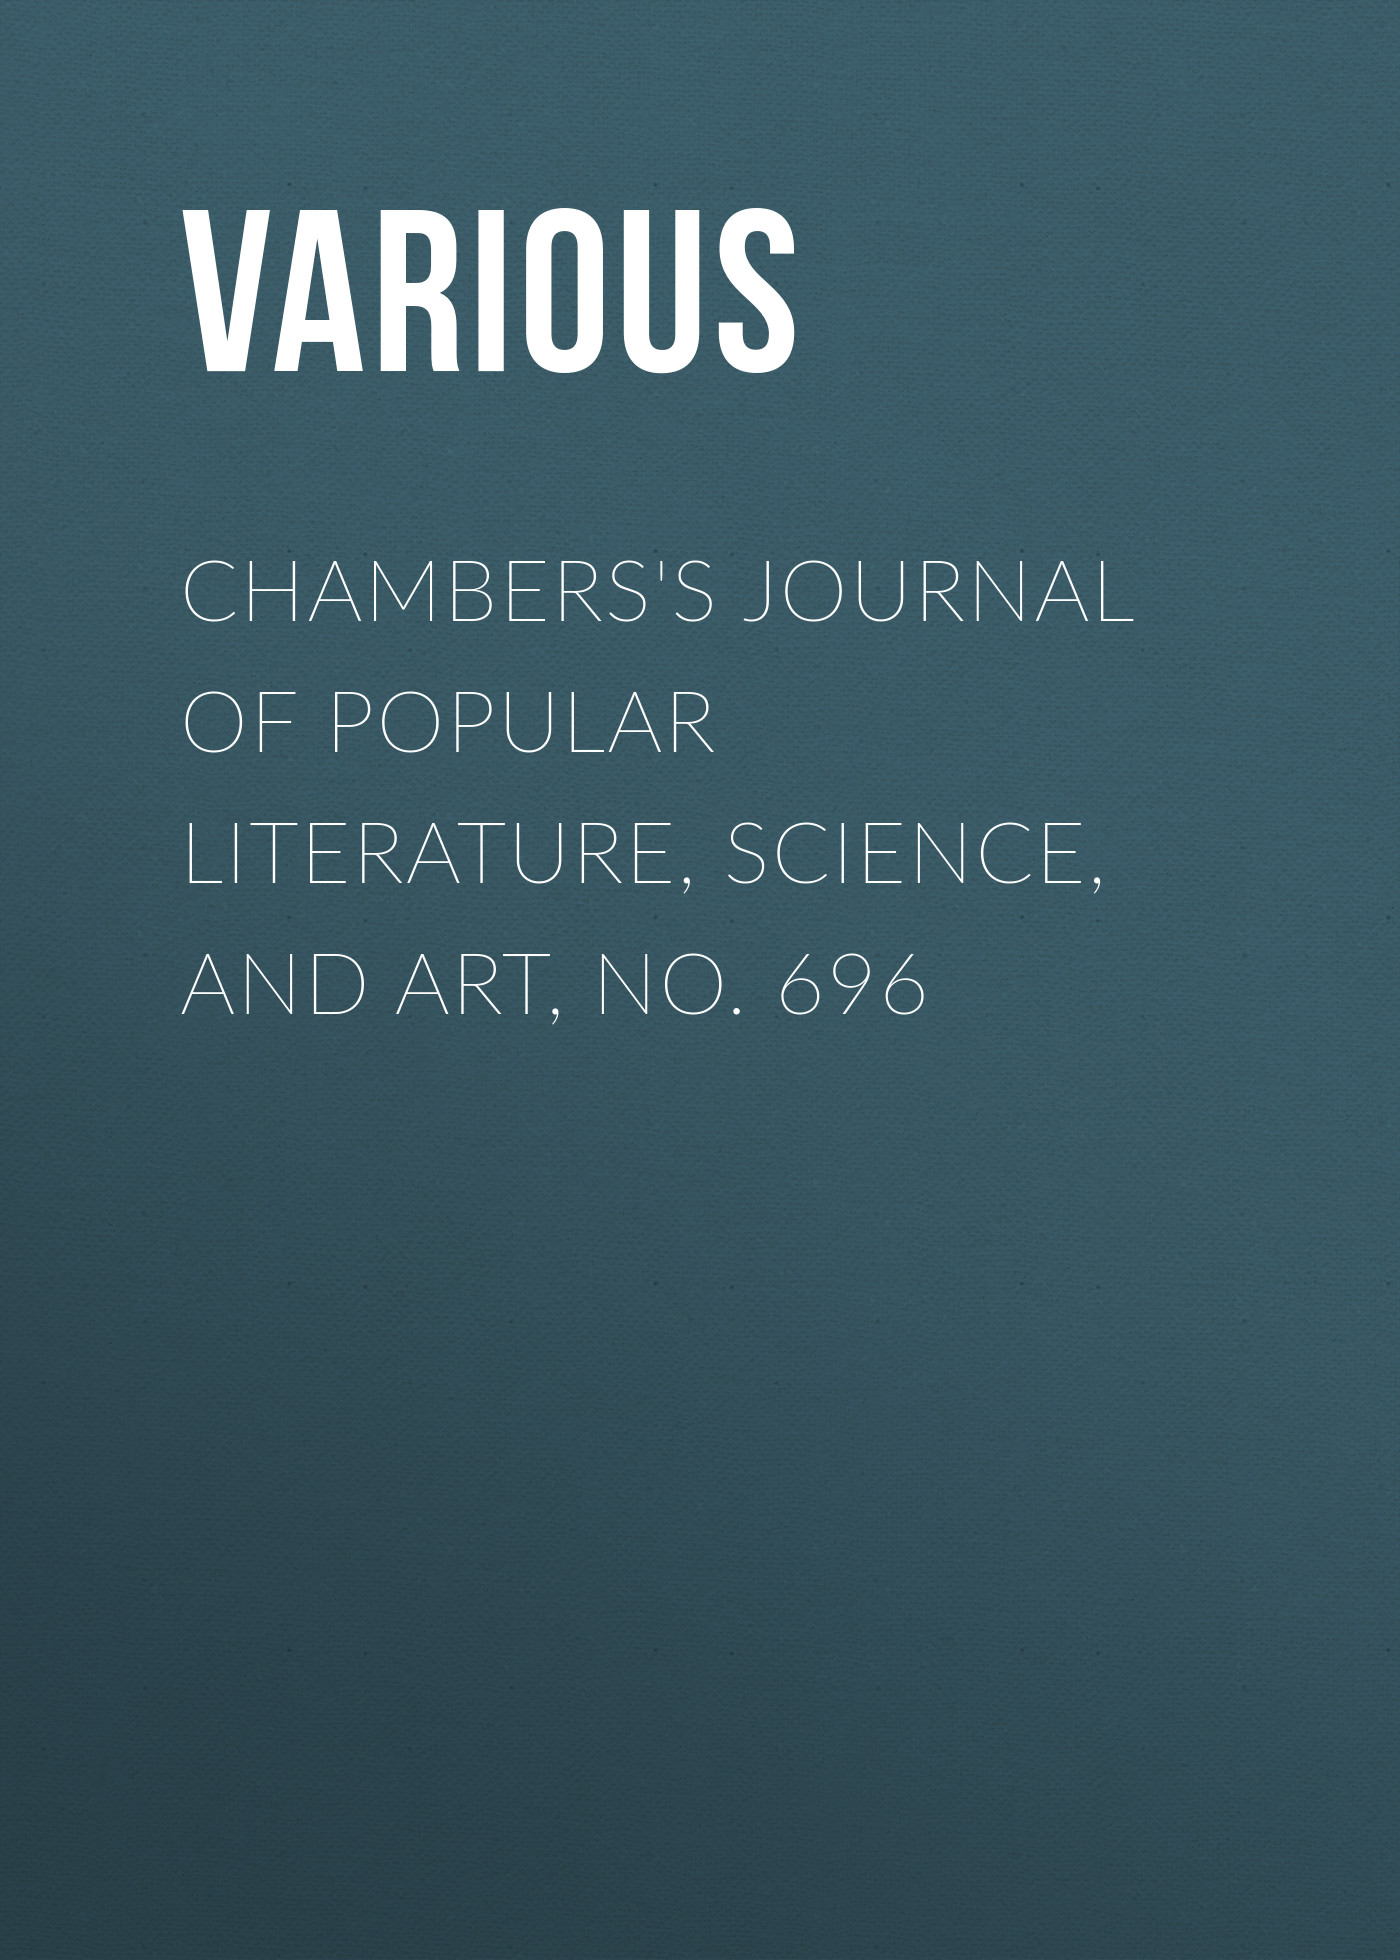 Chambers\'s Journal of Popular Literature, Science, and Art, No. 696 ( Various  )